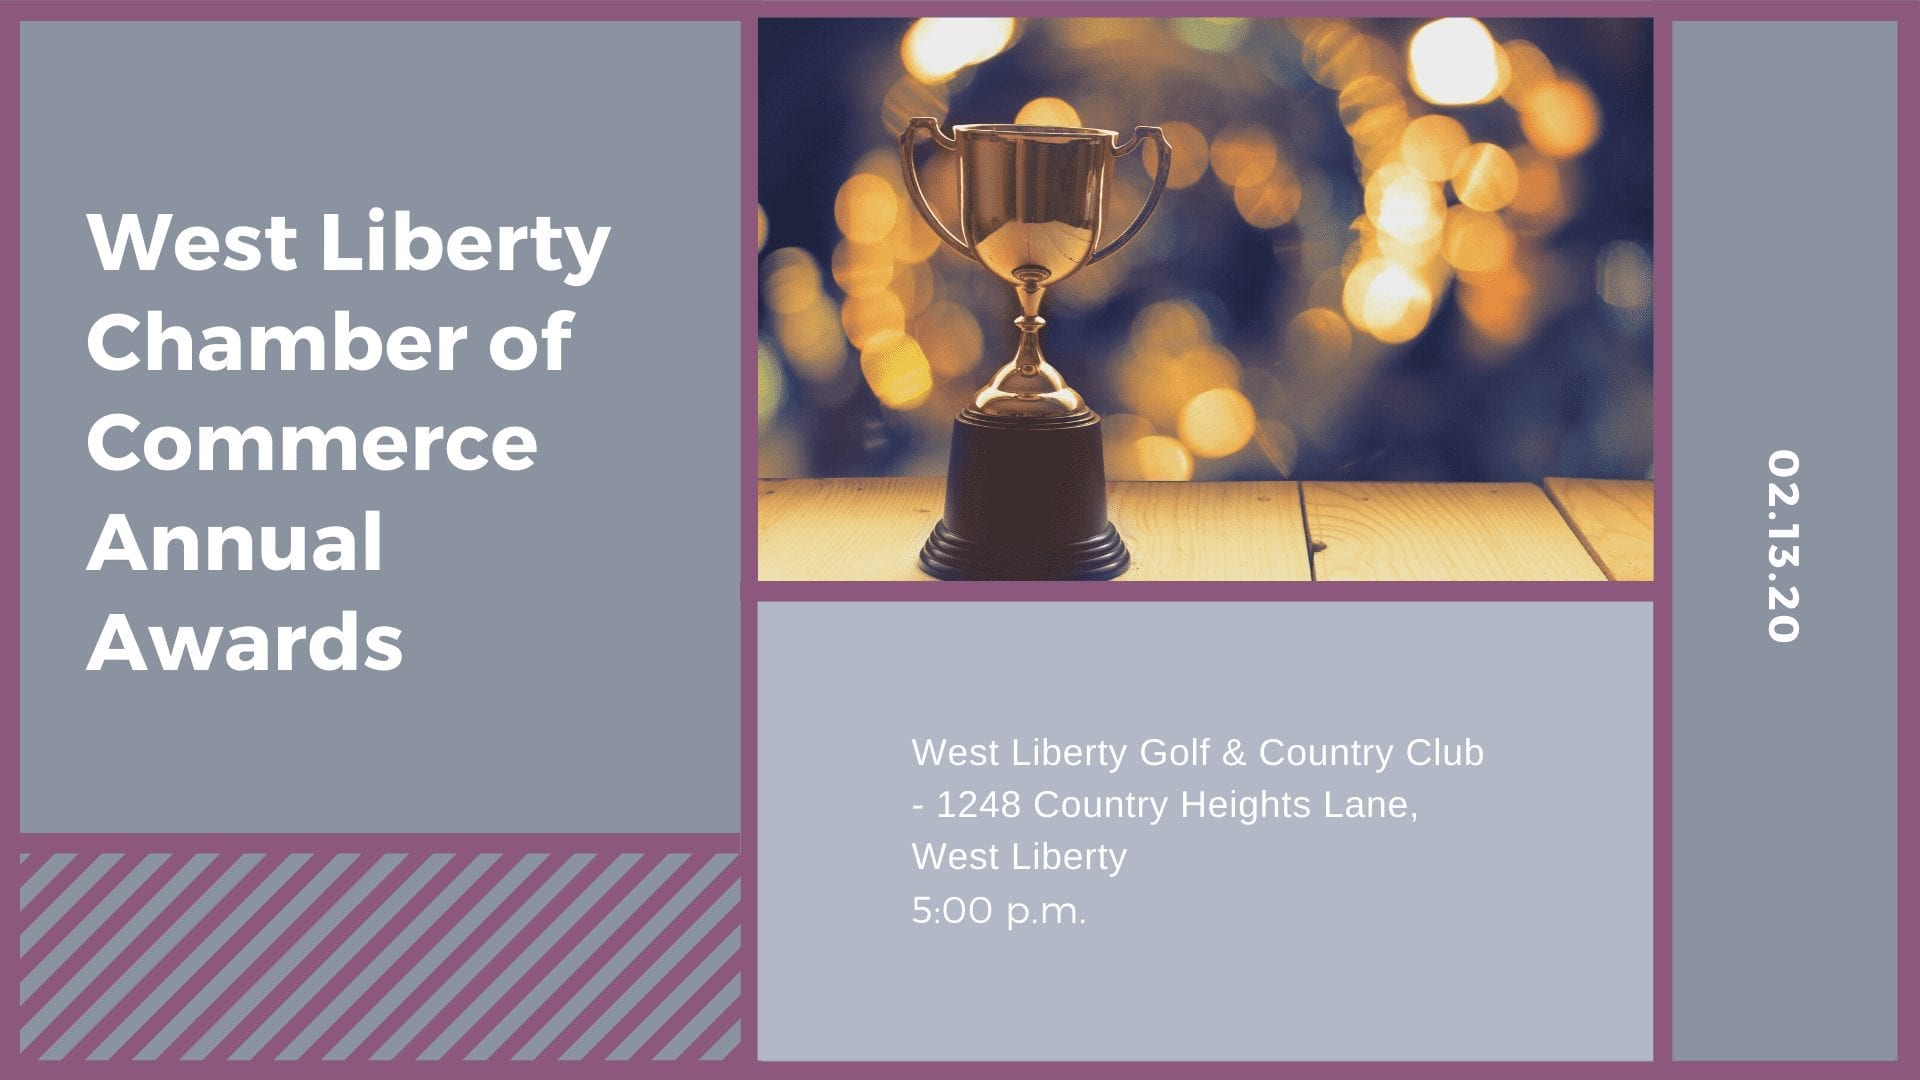 West Liberty Chamber of Commerce Annual Awards